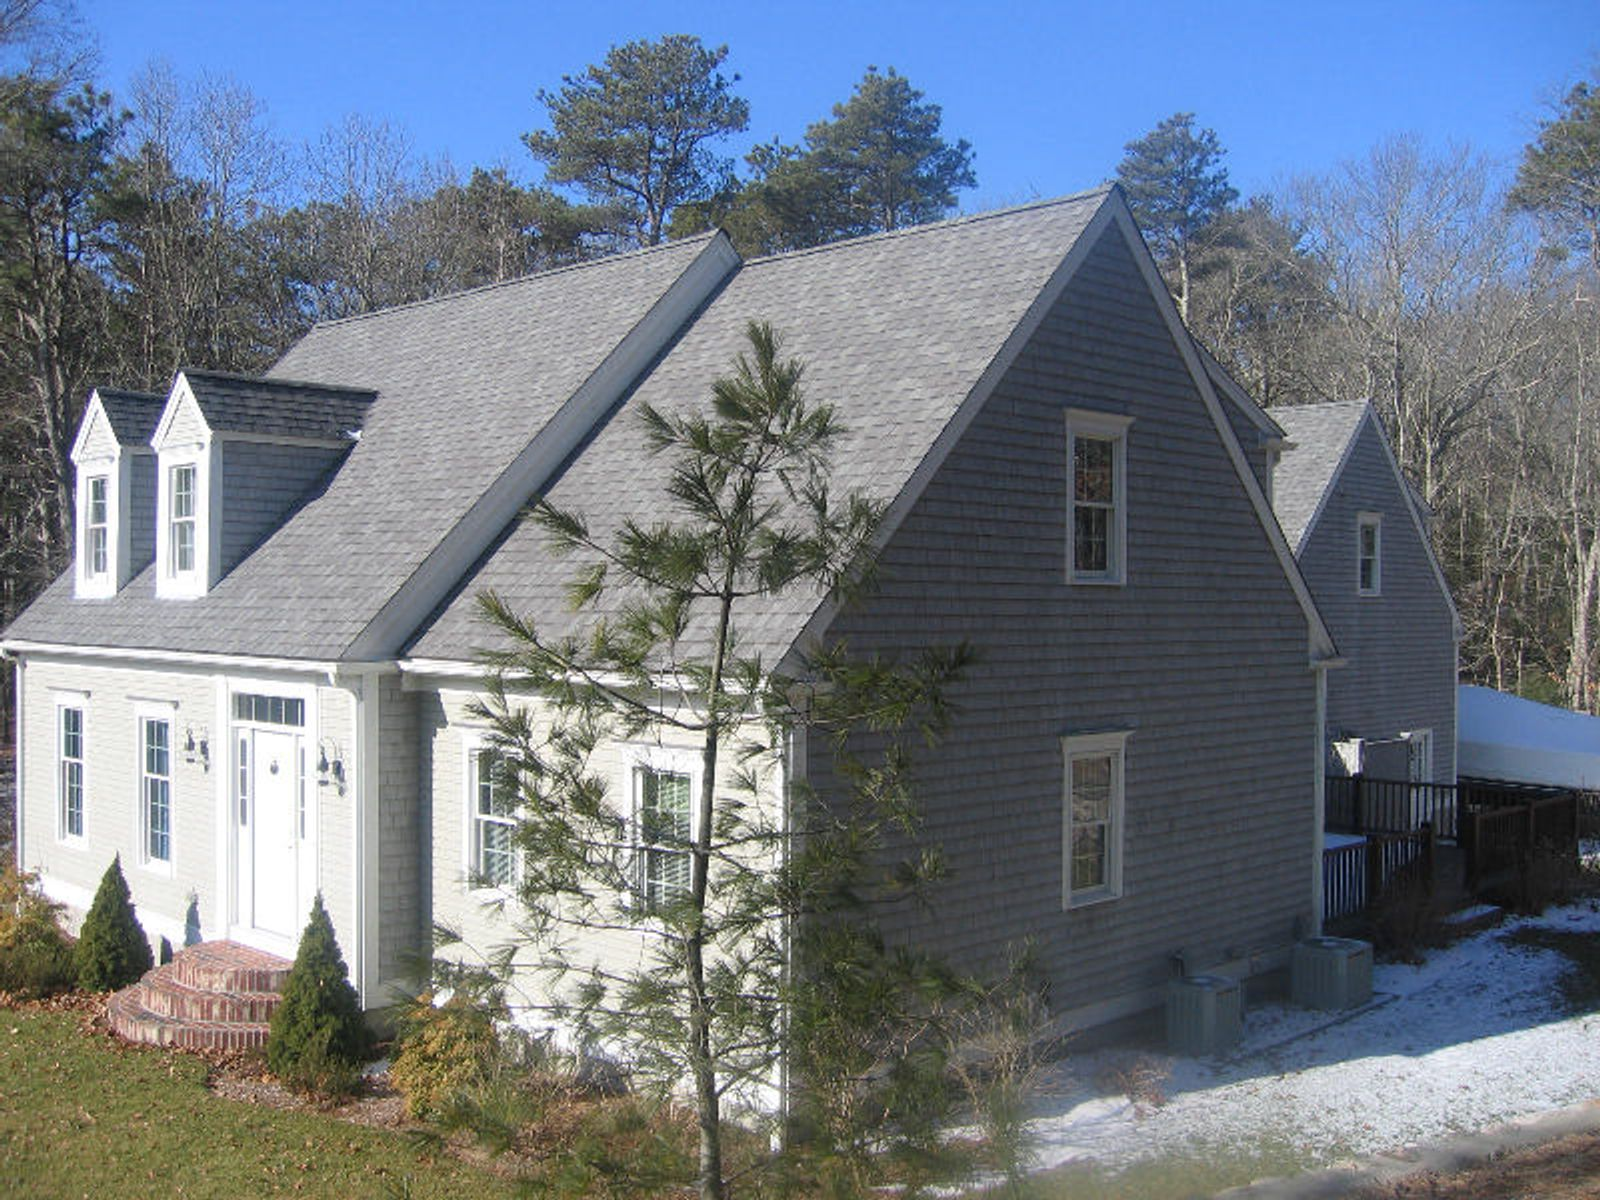 Views of Prince Cove, Marstons Mills MA Single Family Home - Cape Cod Real Estate